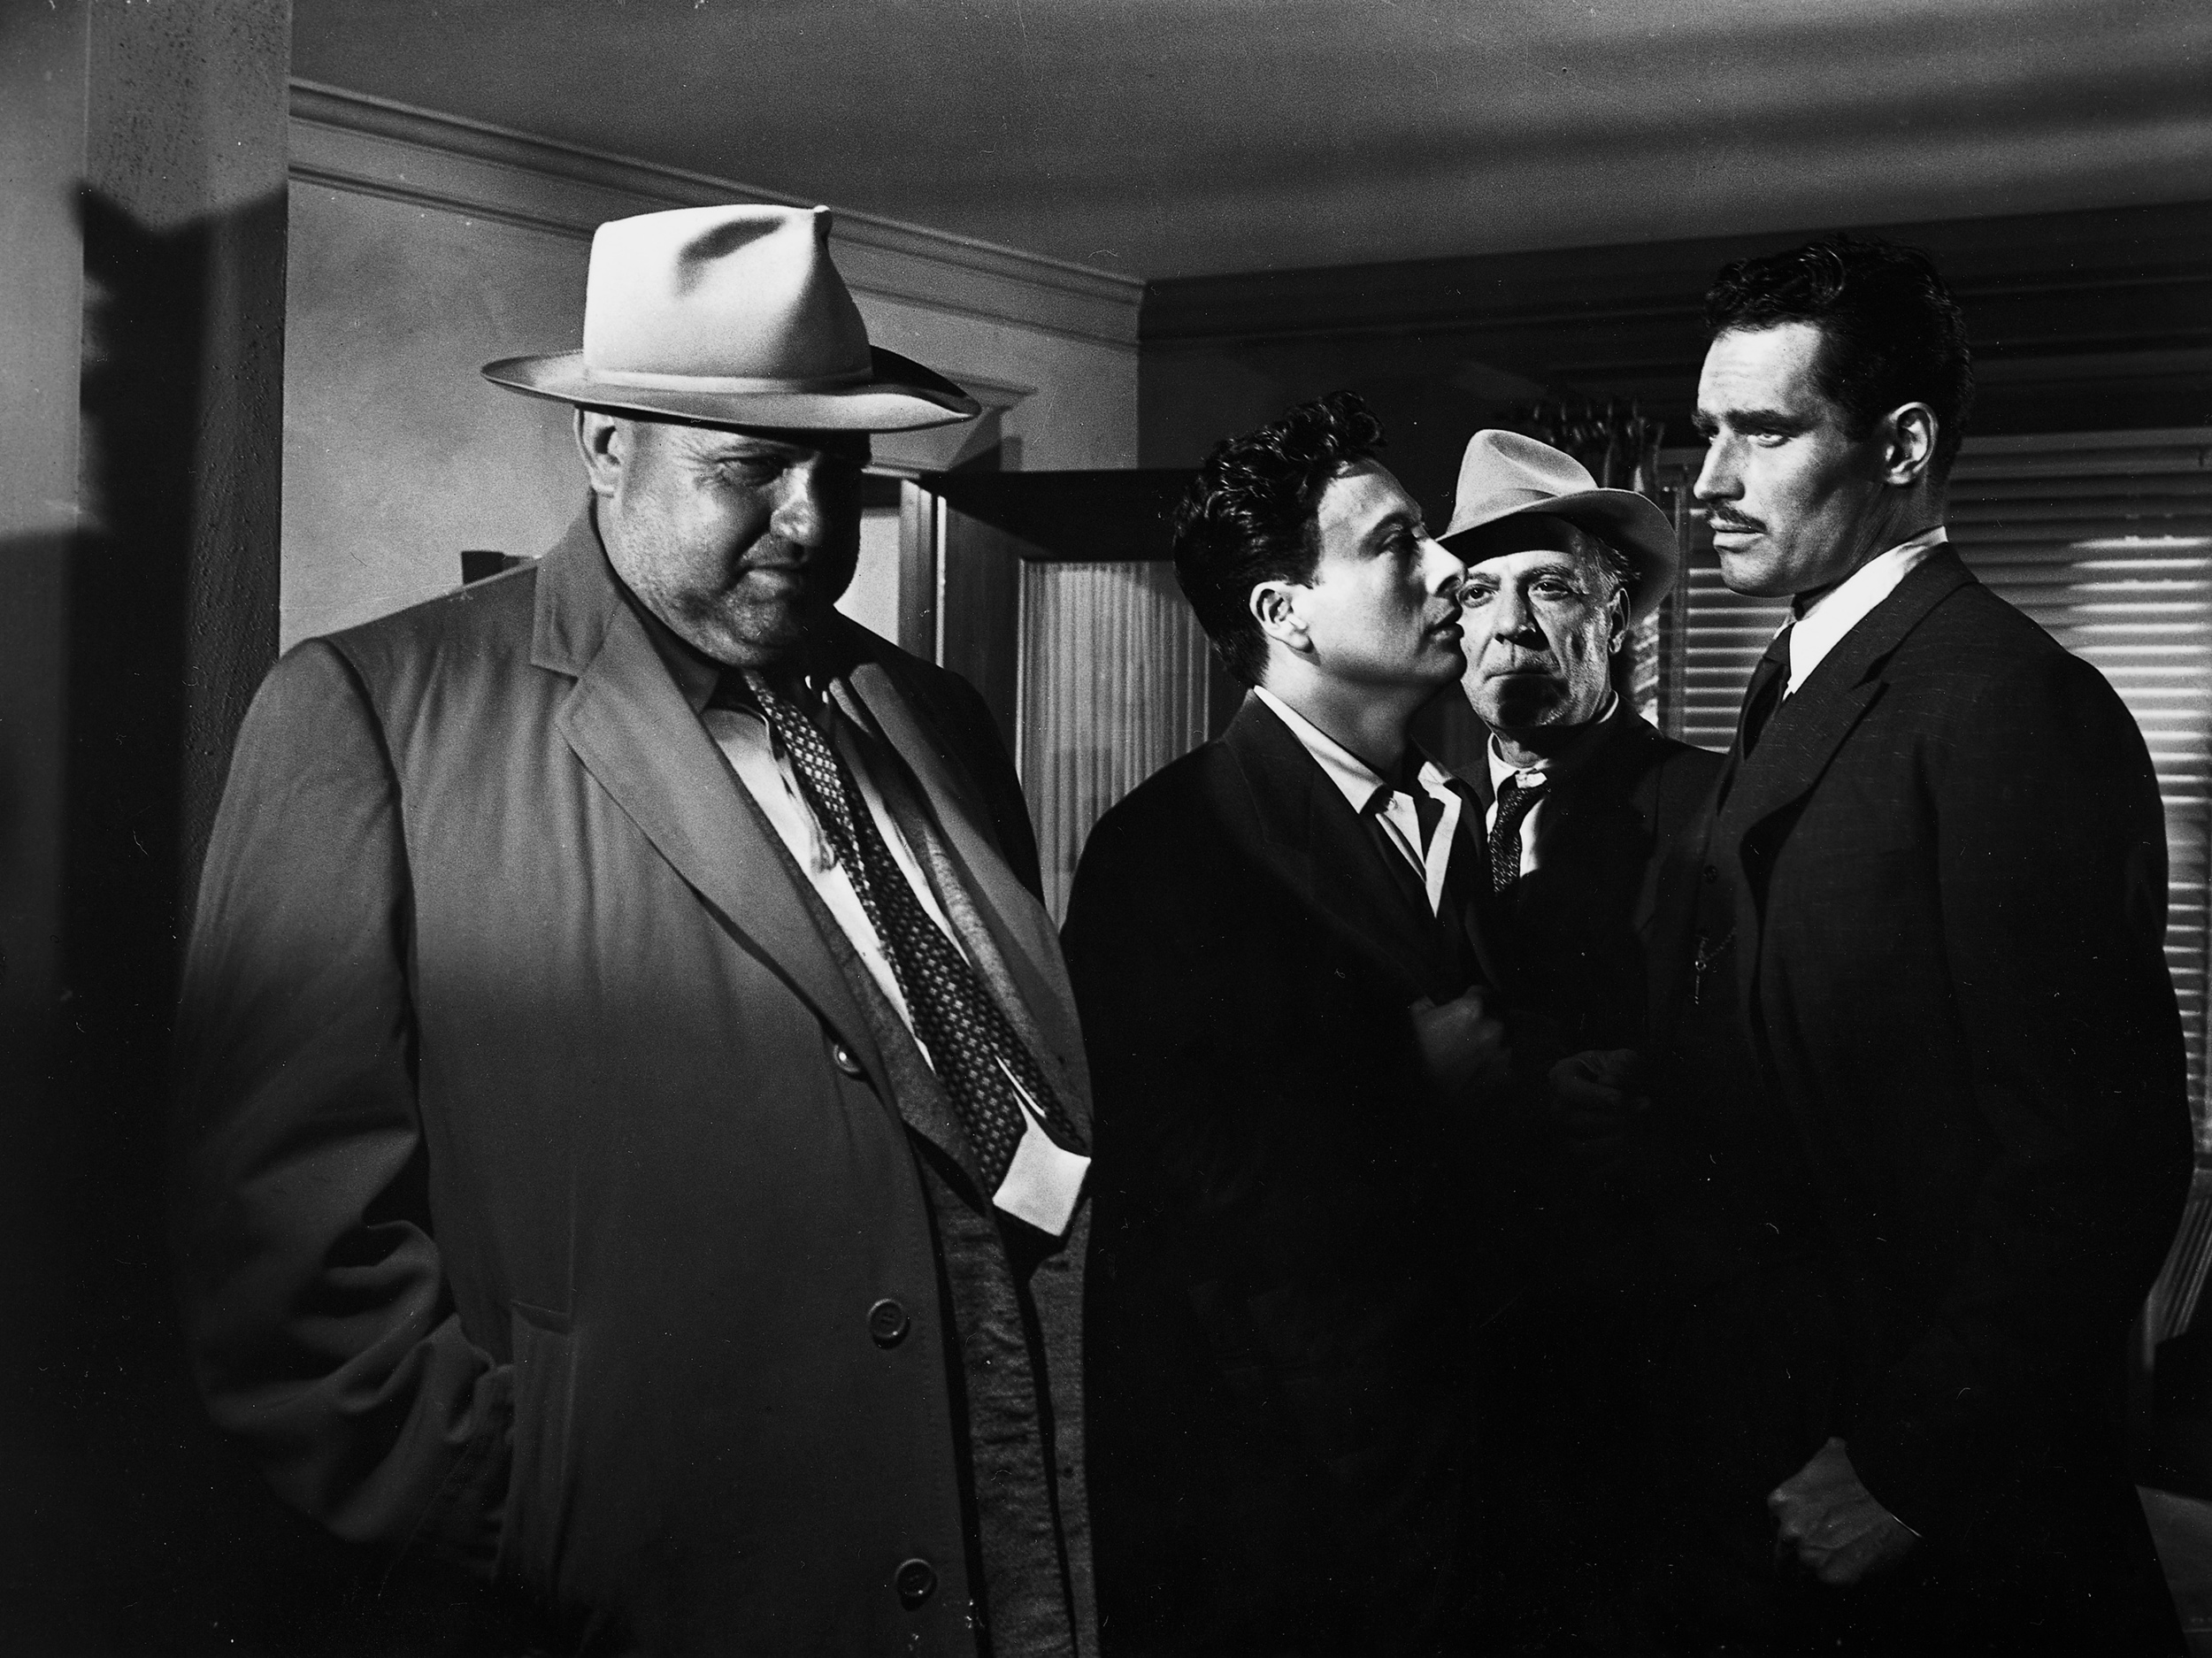 Touch of Evil . Law man or criminal?